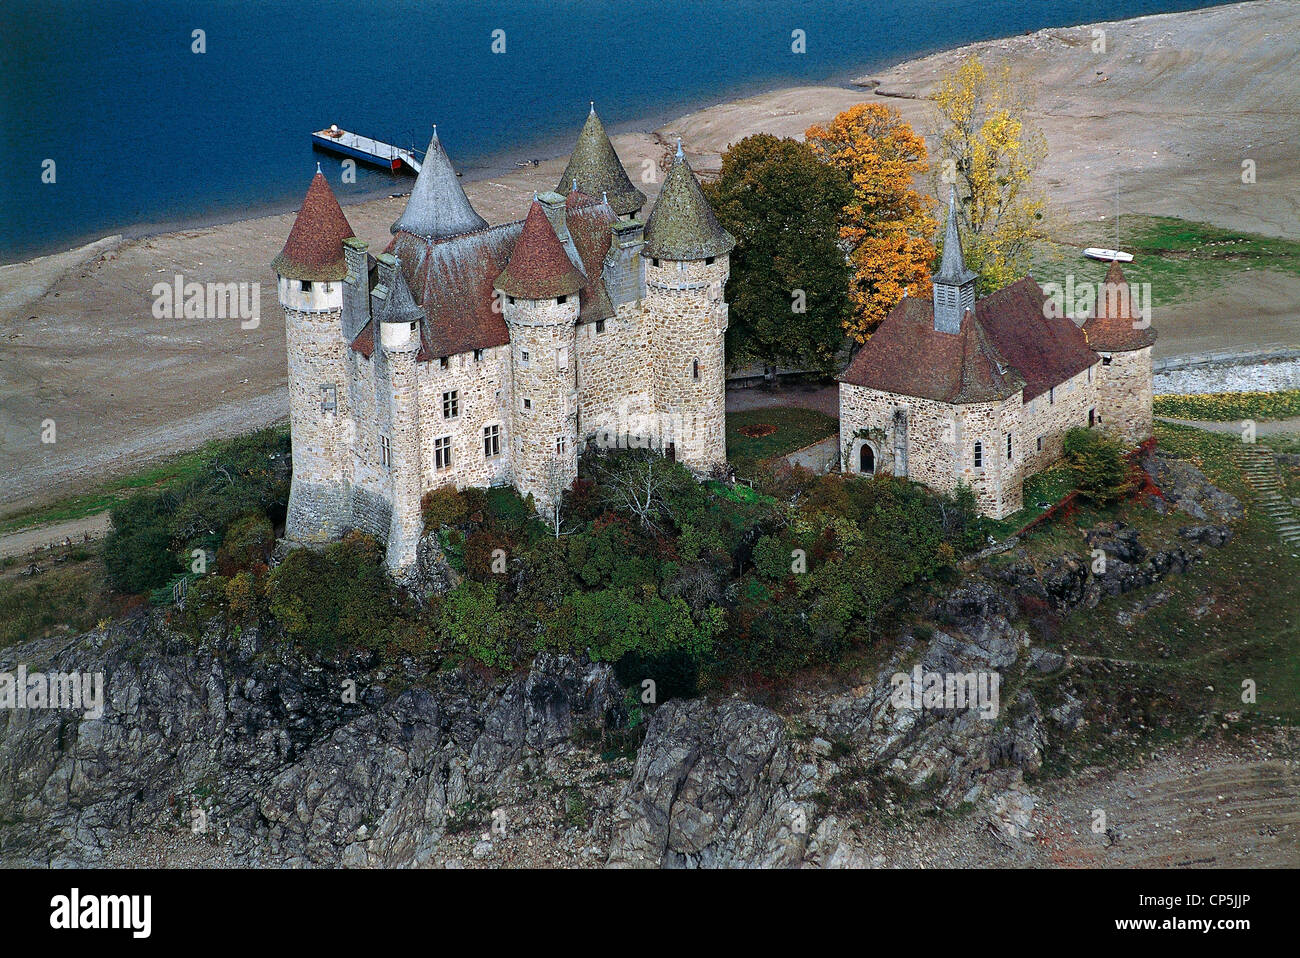 France - Auvergne - Val. Castle of the fifteenth century. - Stock Image